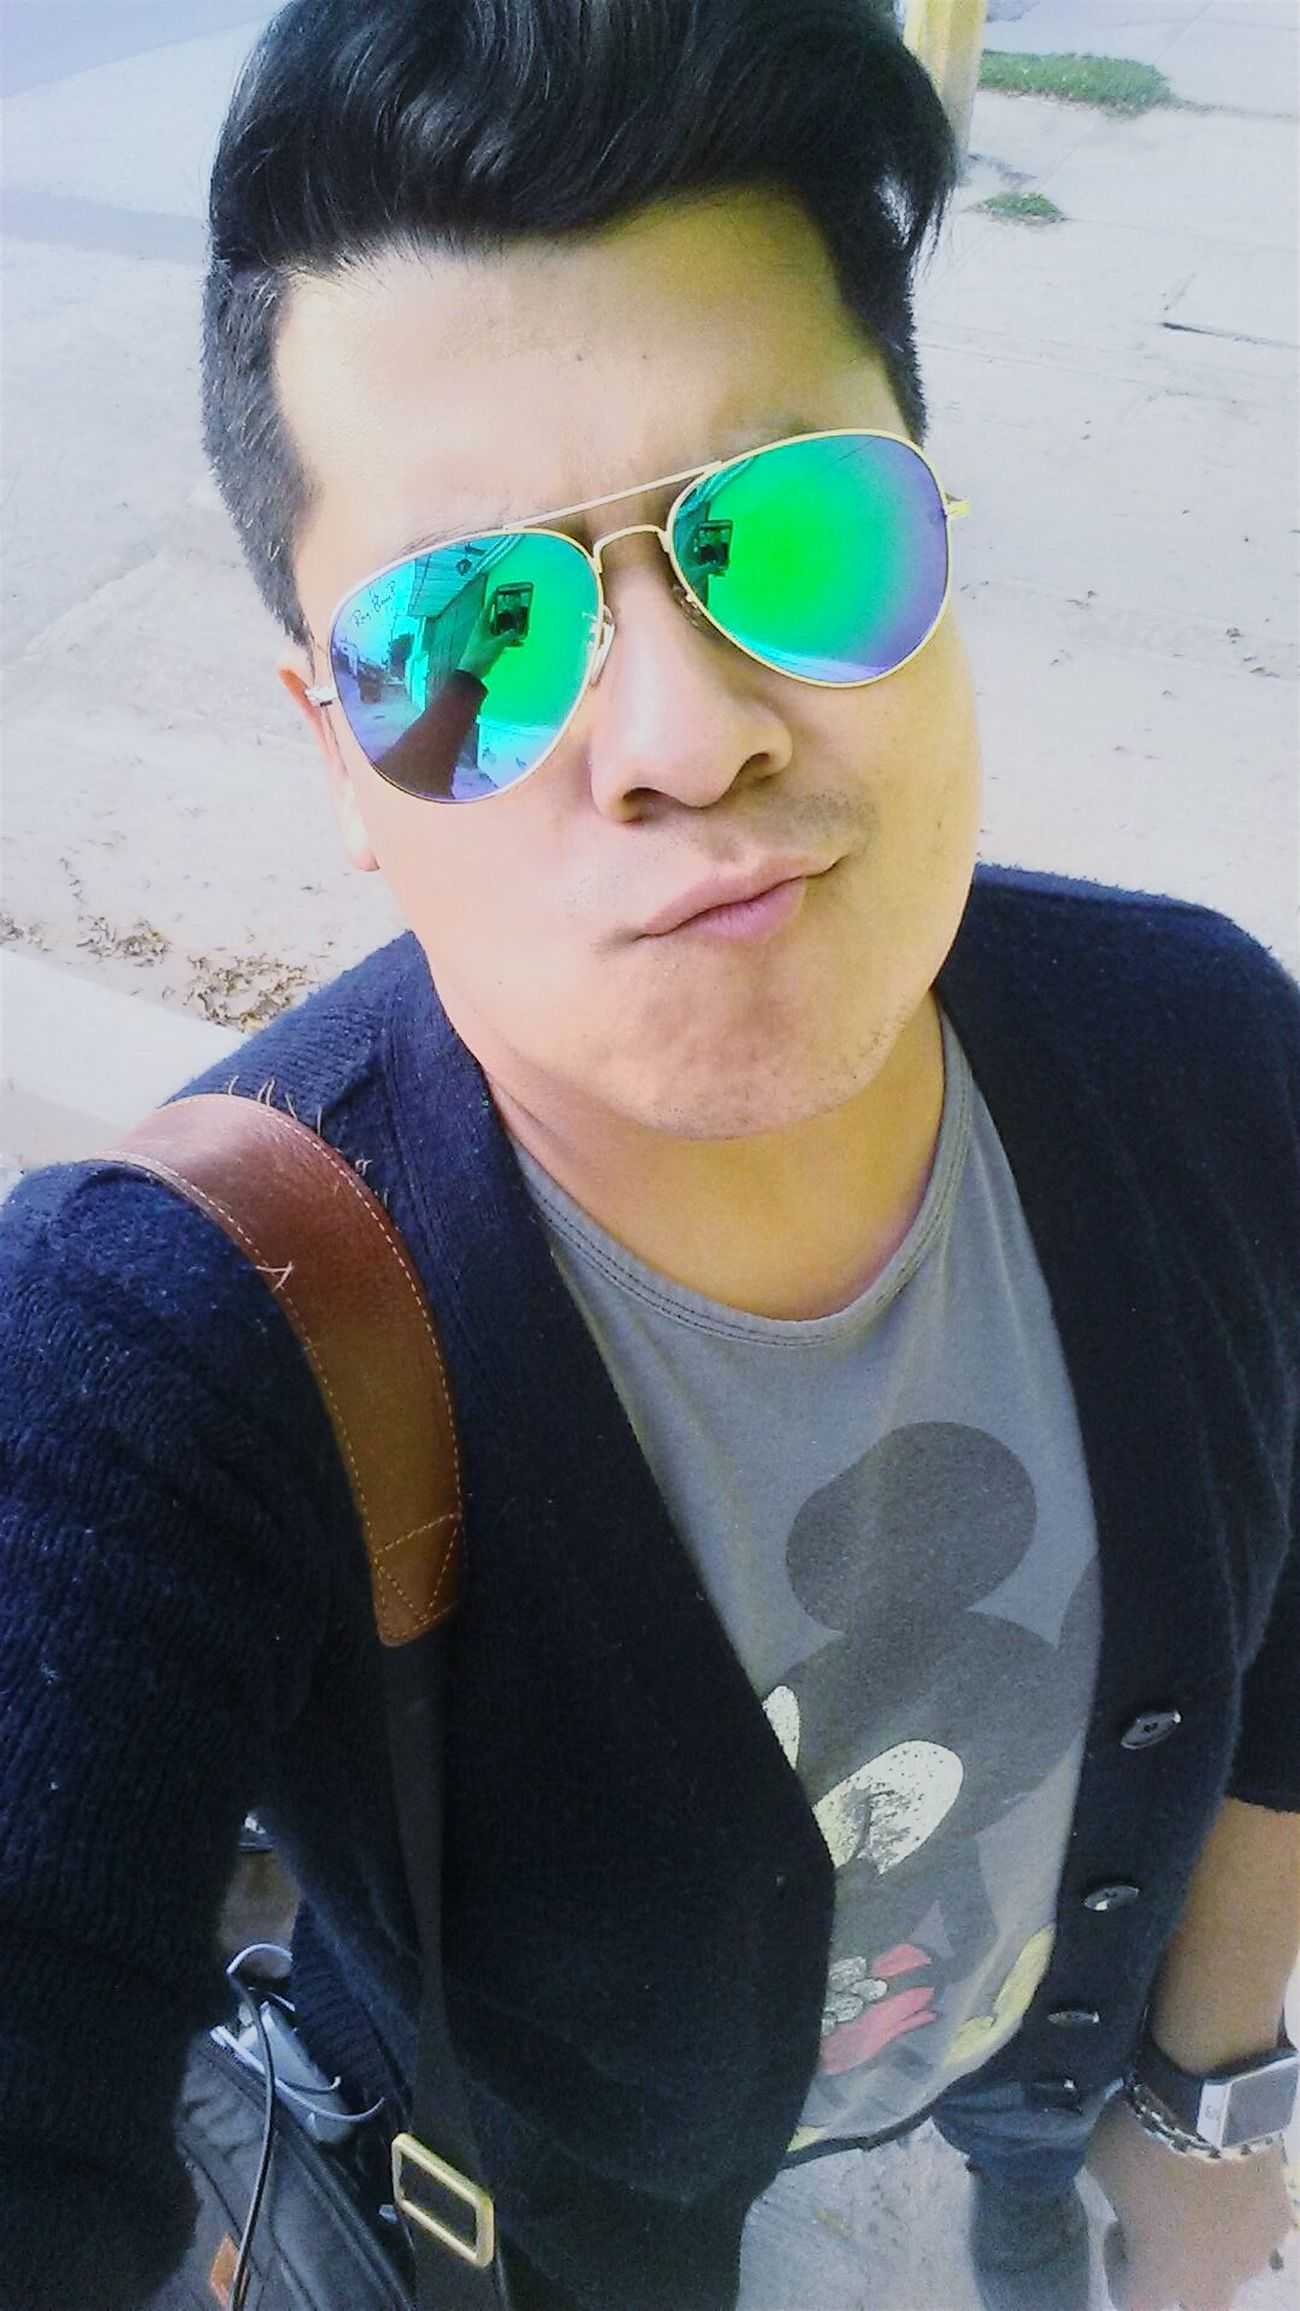 Kianfotografia Mexicanboy Kiss Selfie ✌ Followme